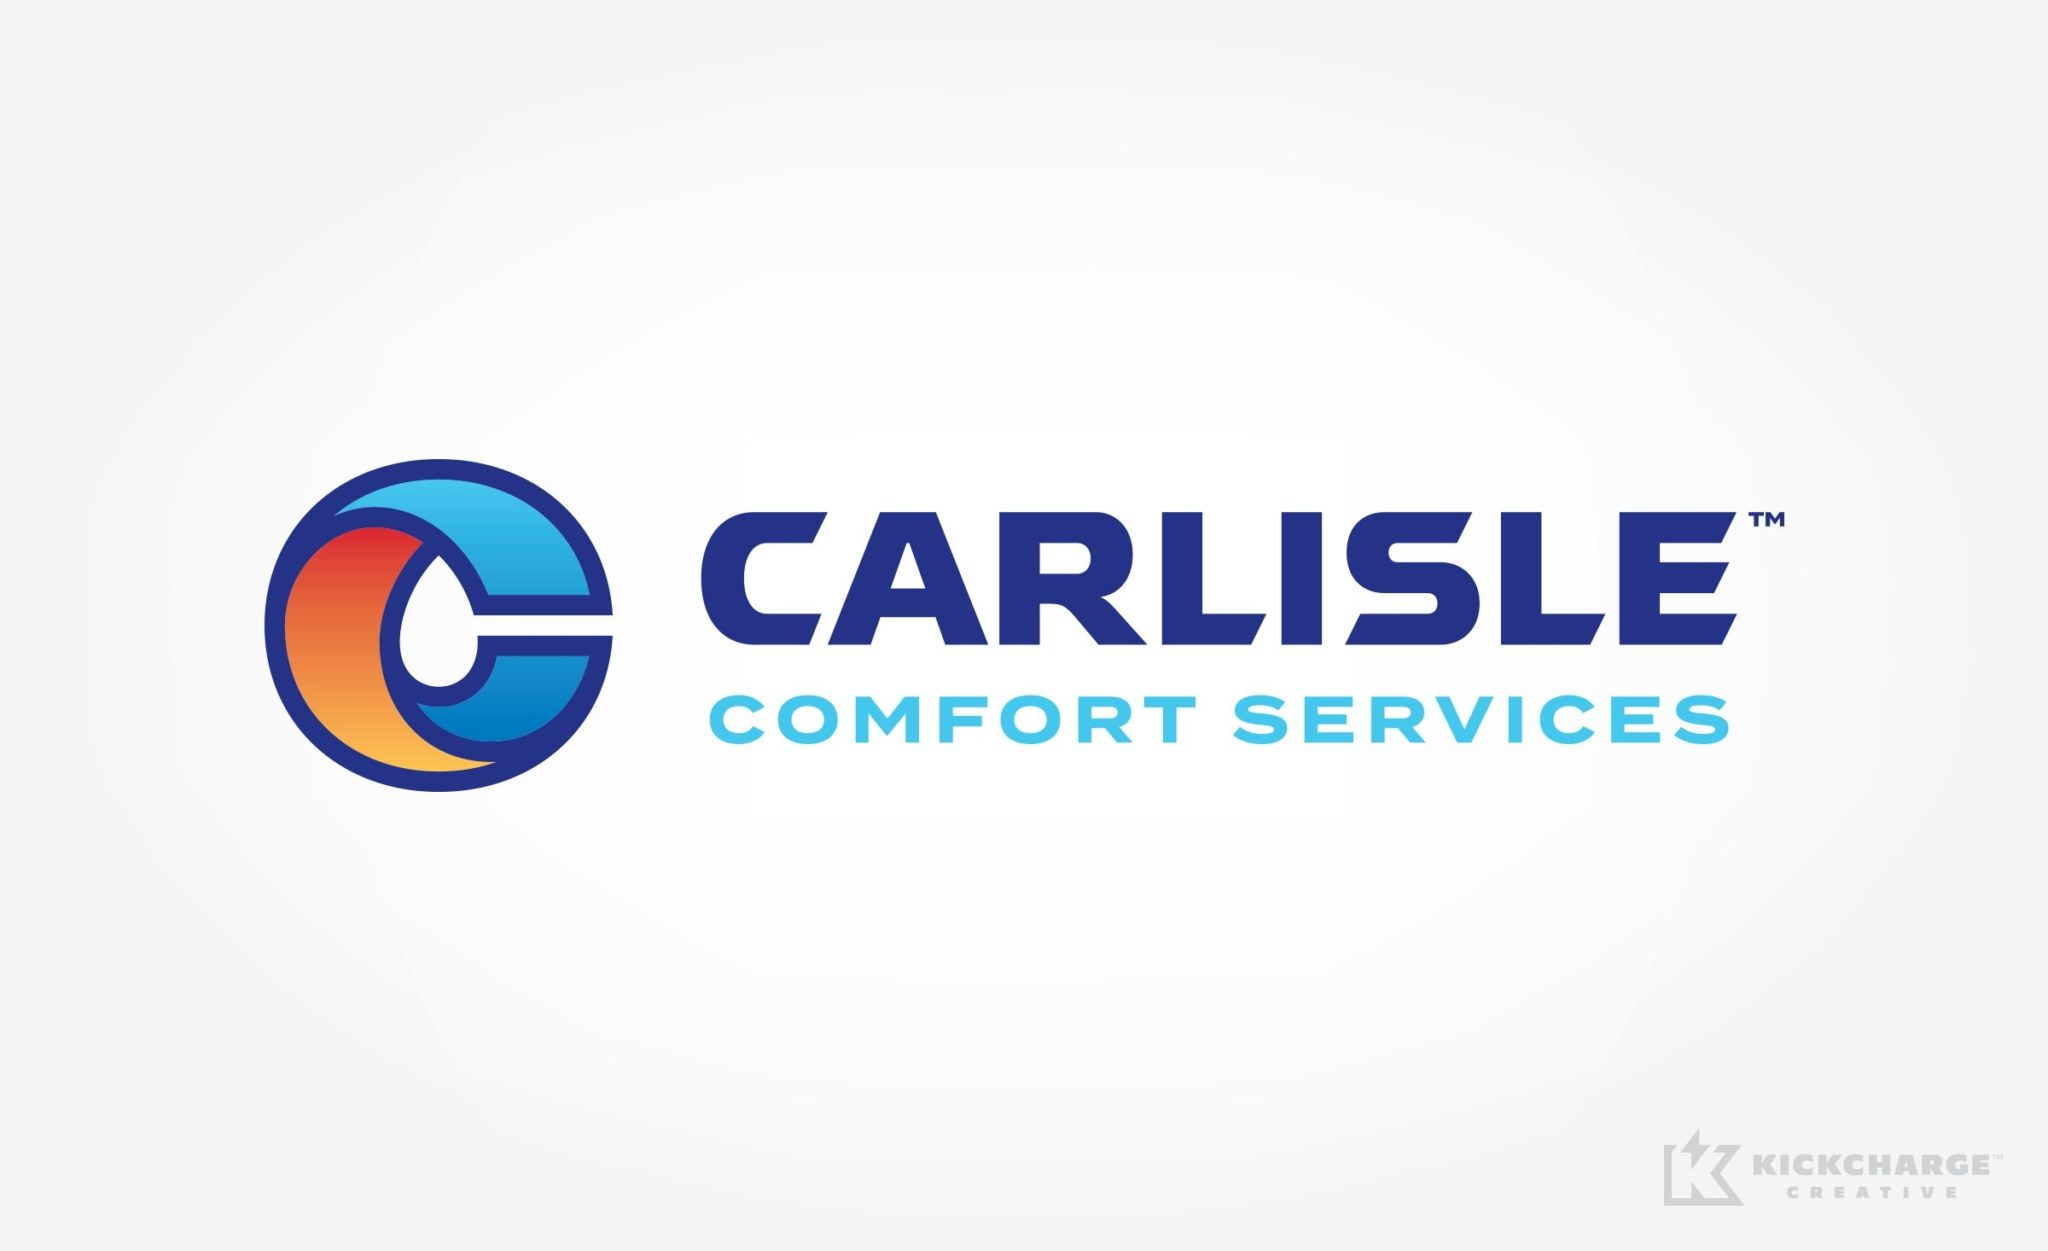 Logo design for Carlisle Comfort Services, a heating, cooling & plumbing contractor.